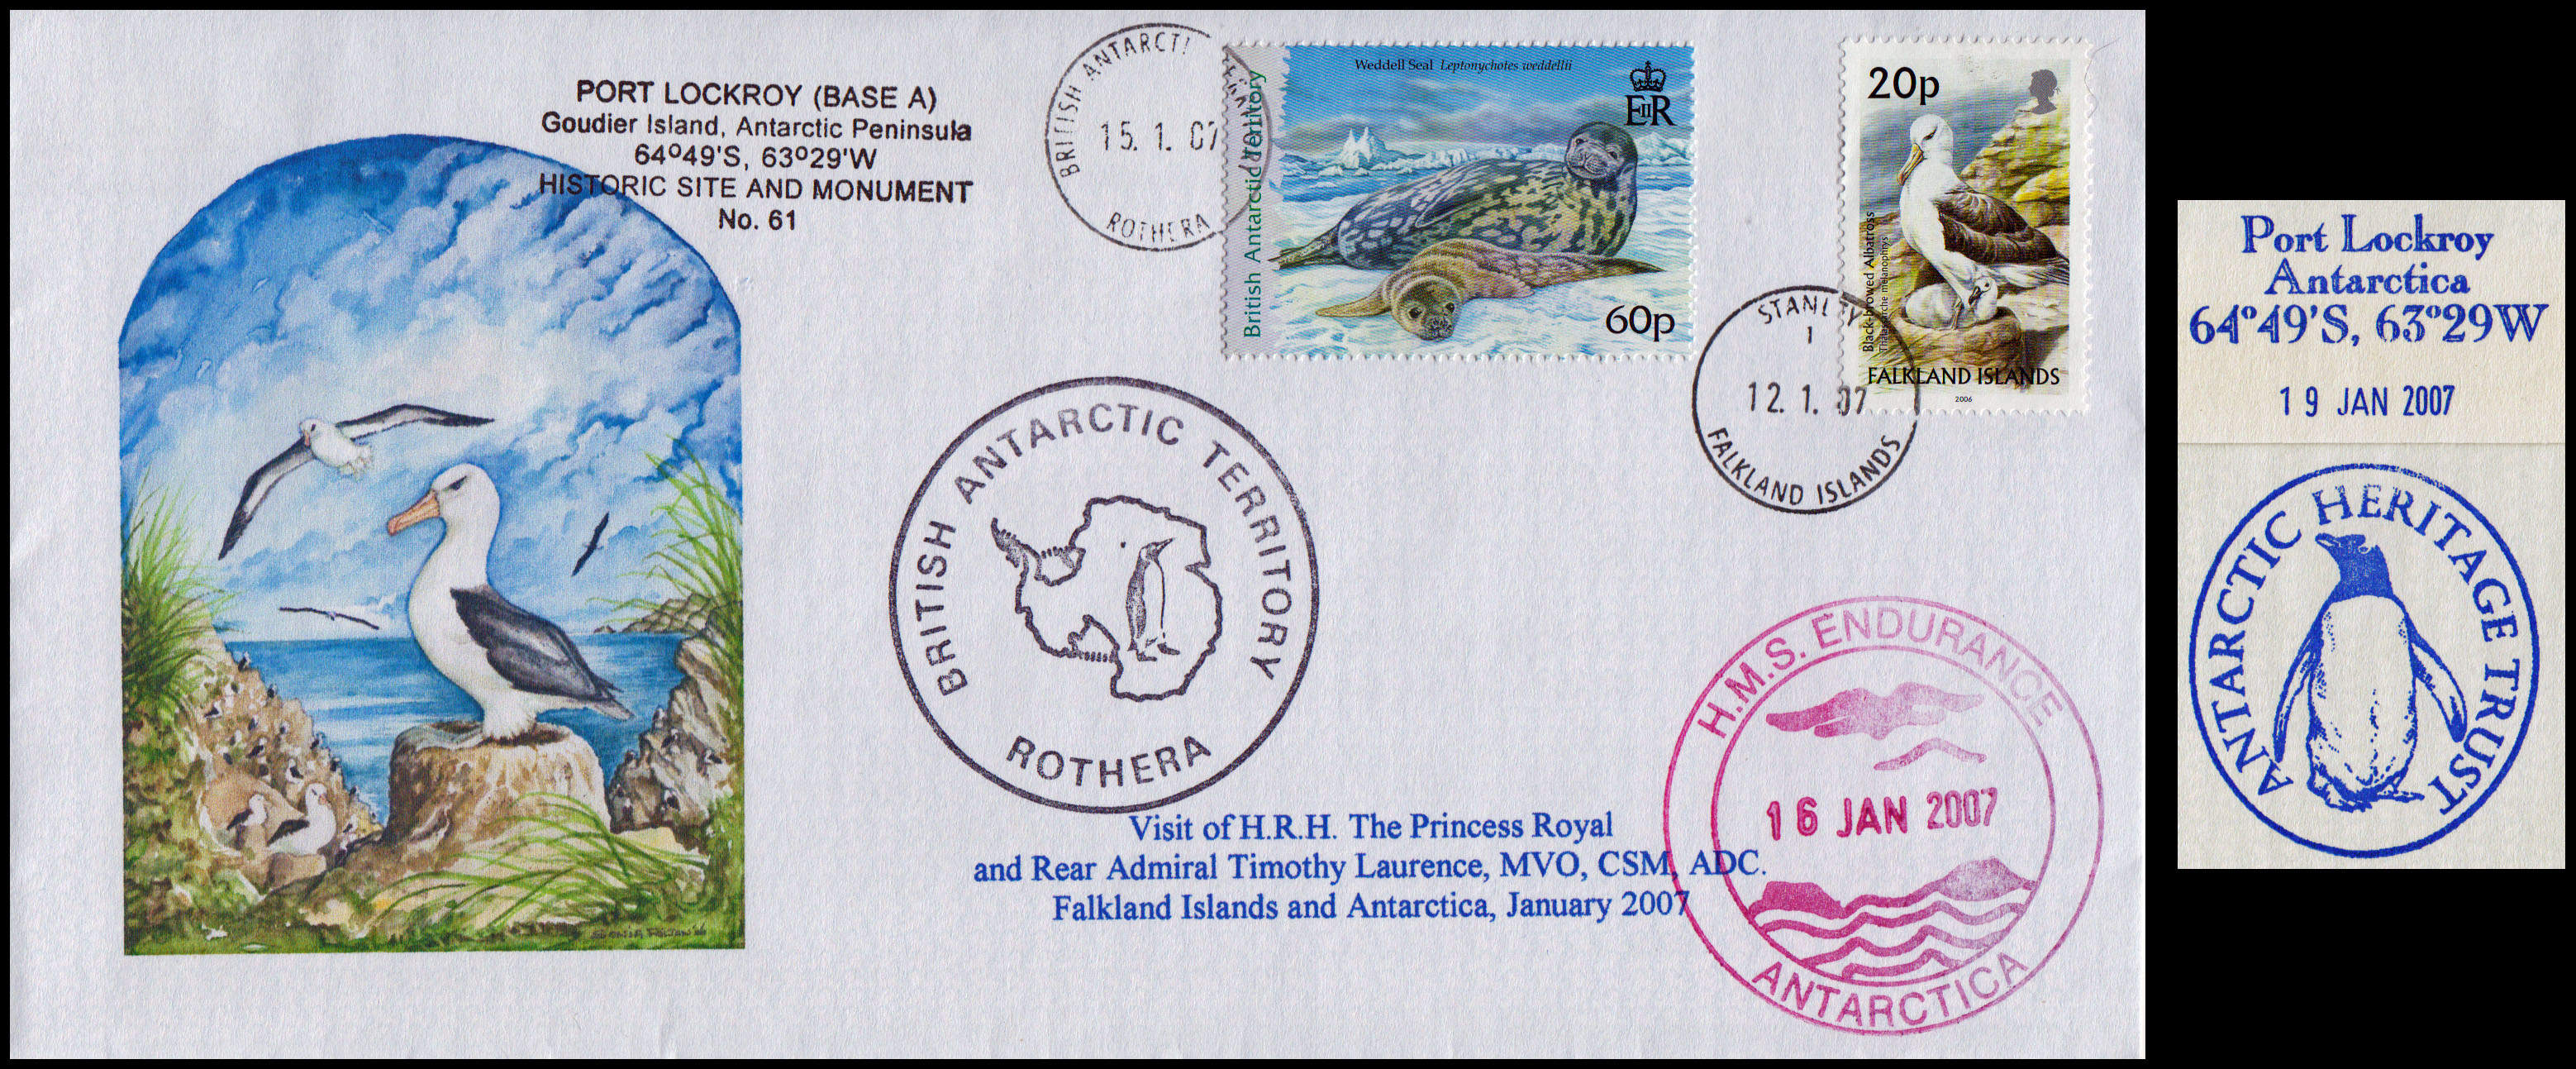 Visit of the Princess Royal to Antarctica. The cover was flown from Stanley to Rothera on the Dash 7